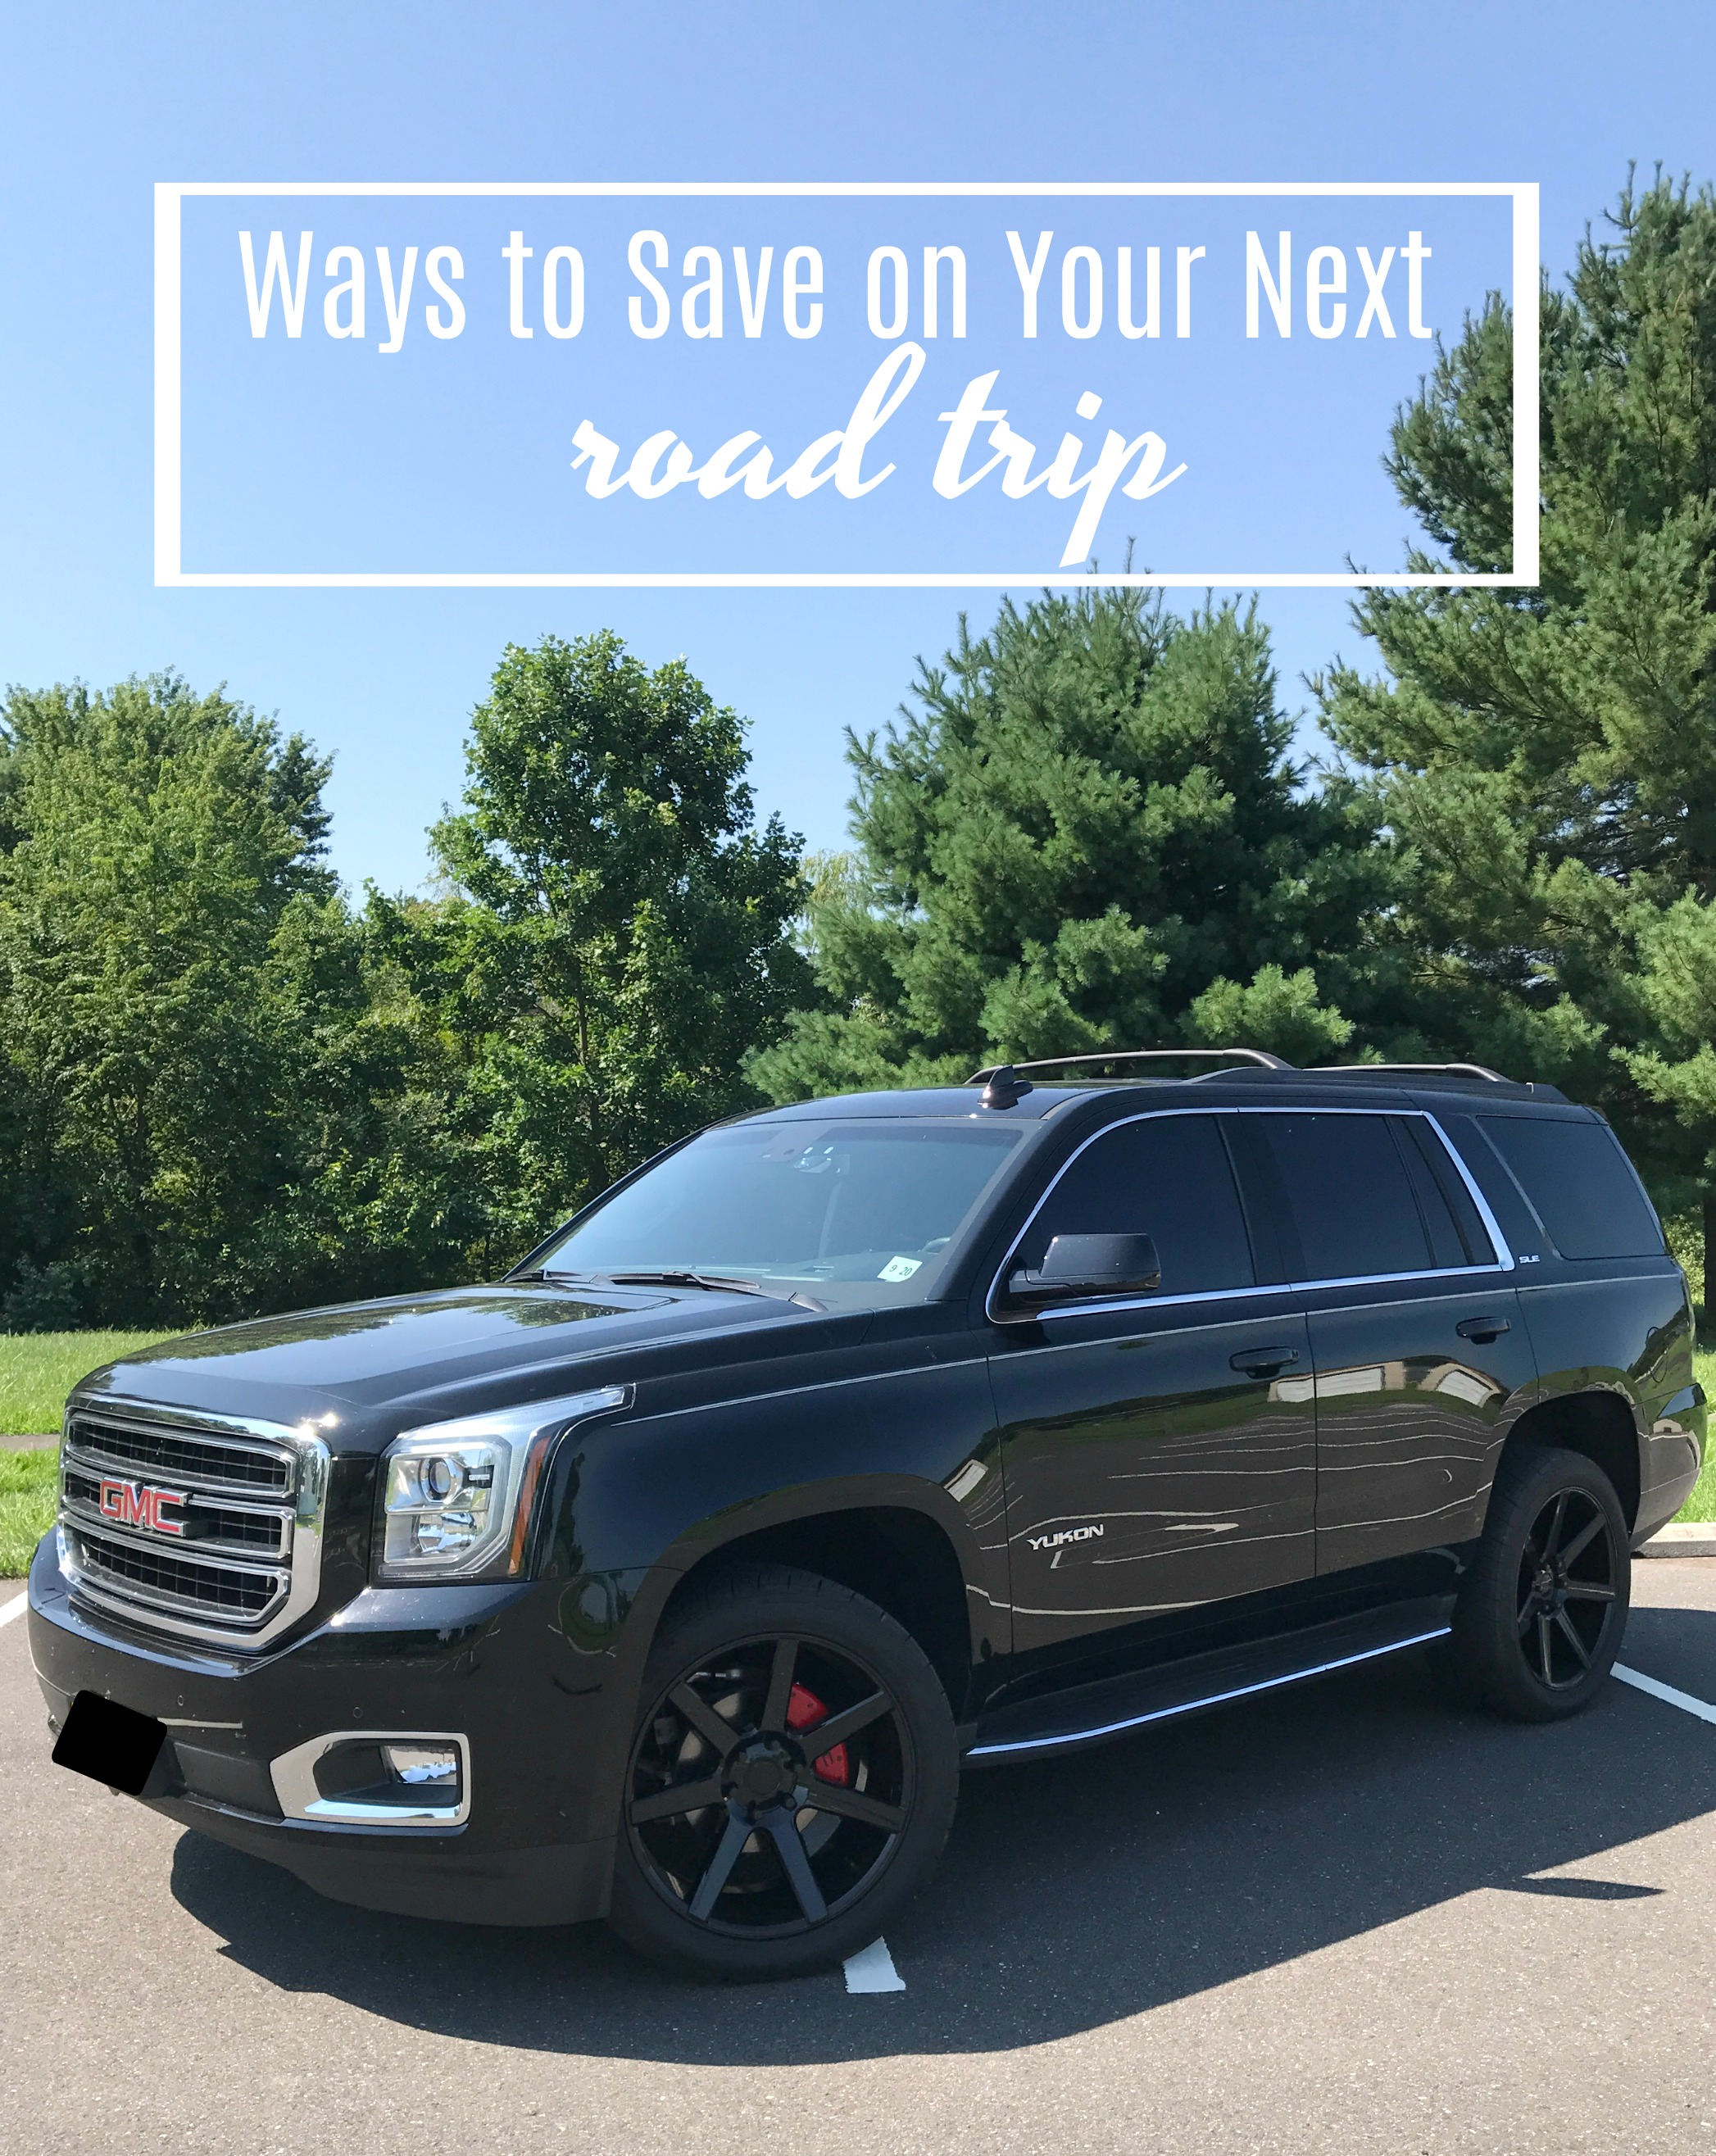 Ways to Save on Your Next Road Trip